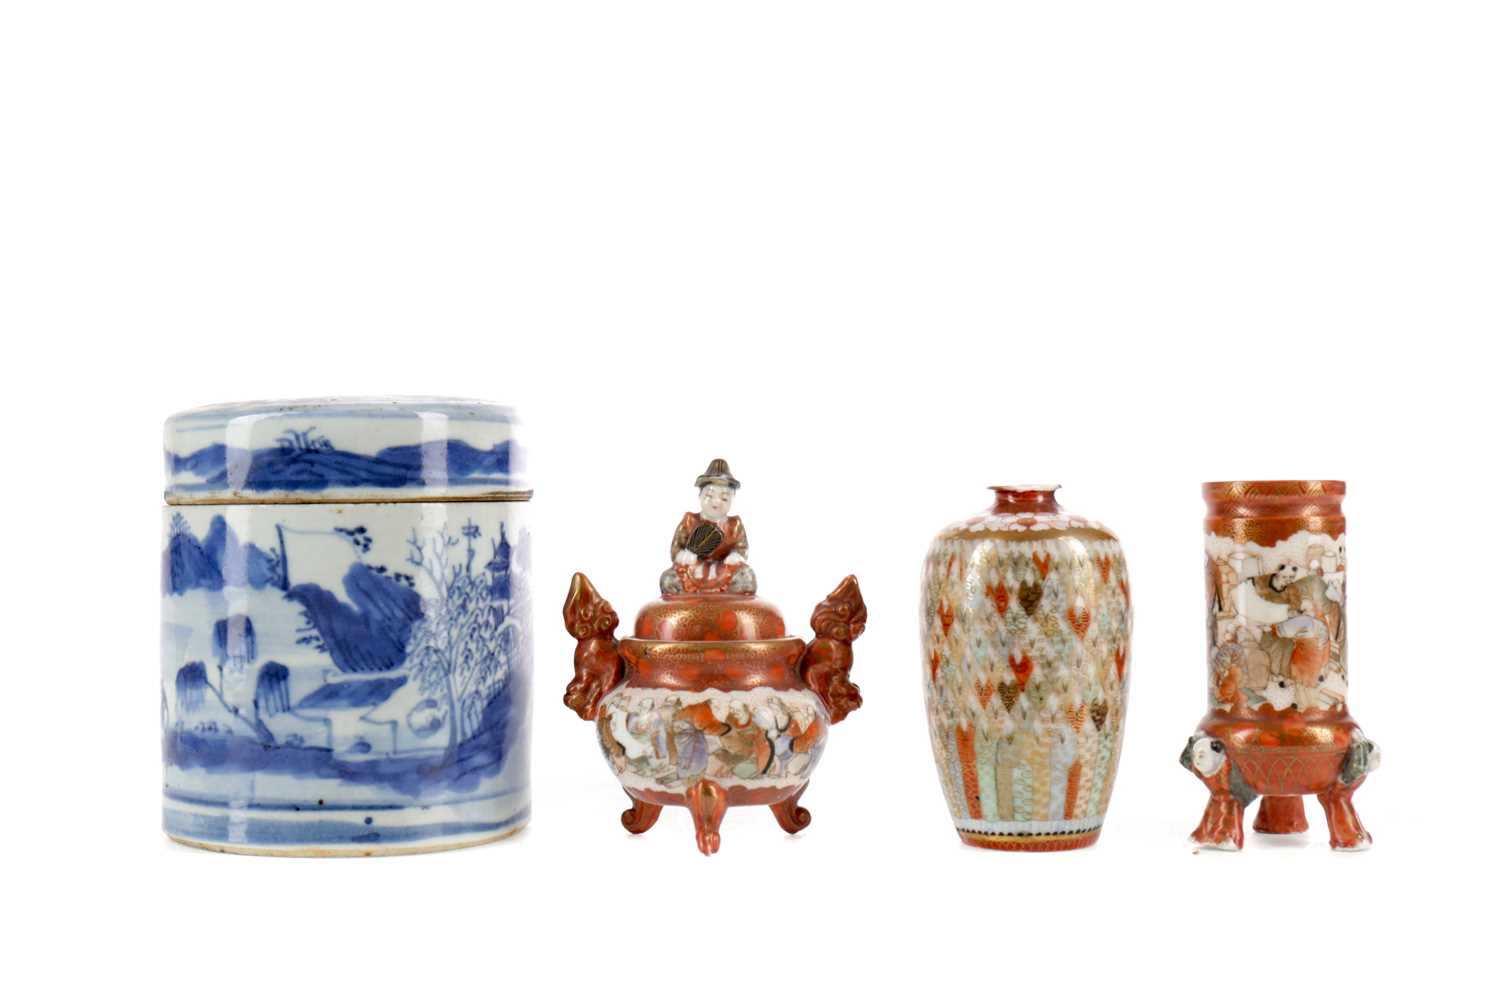 Lot 715 - AN EARLY 20TH CENTURY CHINESE BLUE AND WHITE LIDDED JAR, JAPANESE KUTANI VASES AND A KORO